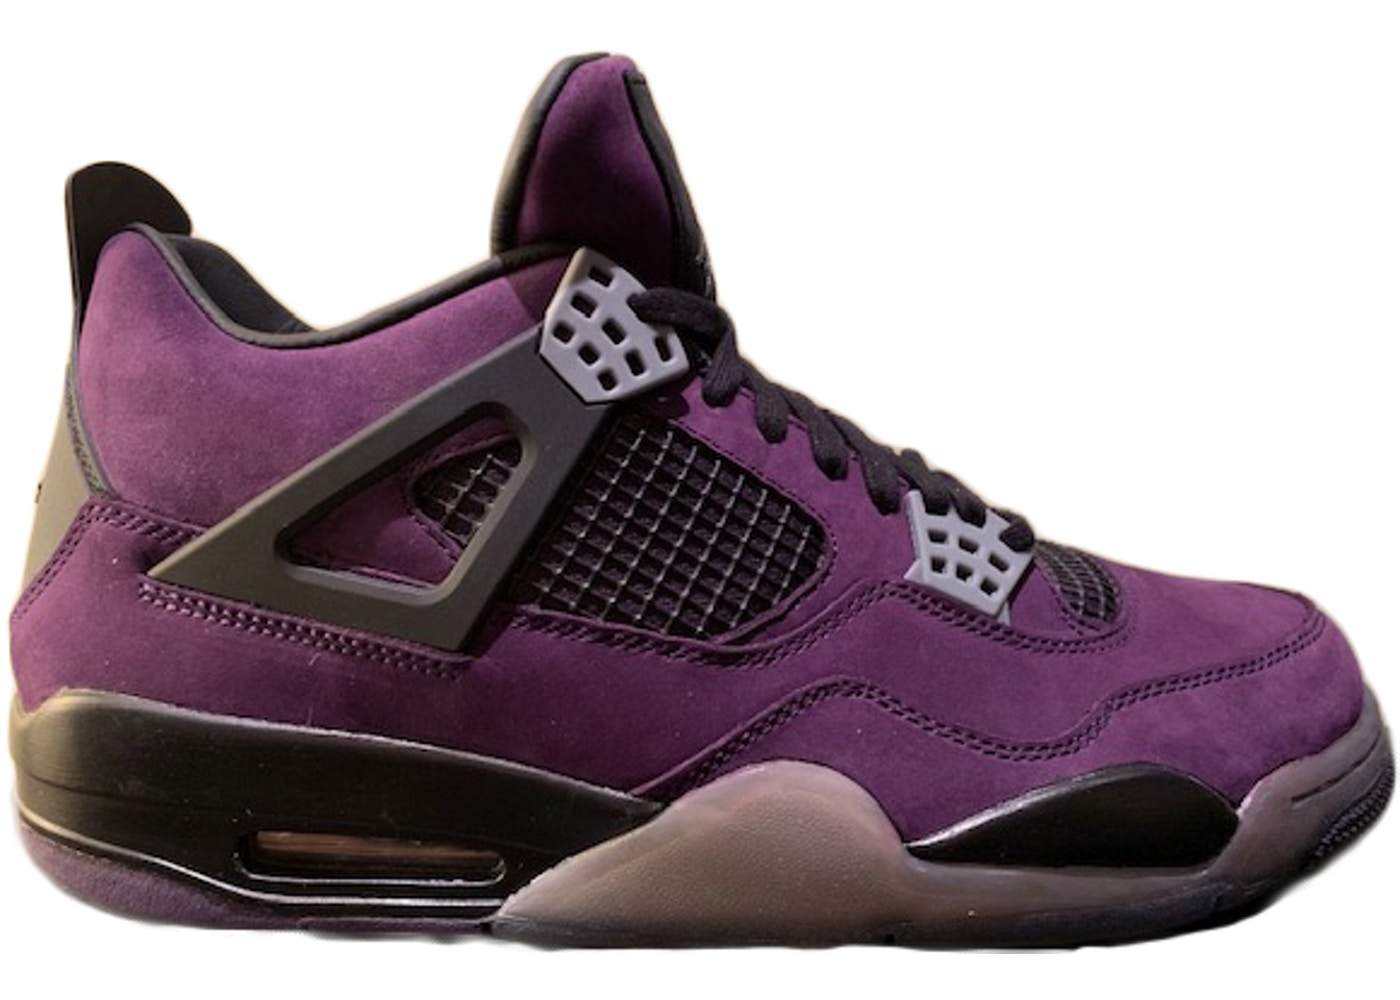 separation shoes aca43 c355b Jordan 4 Retro Travis Scott Purple (Friends and Family)